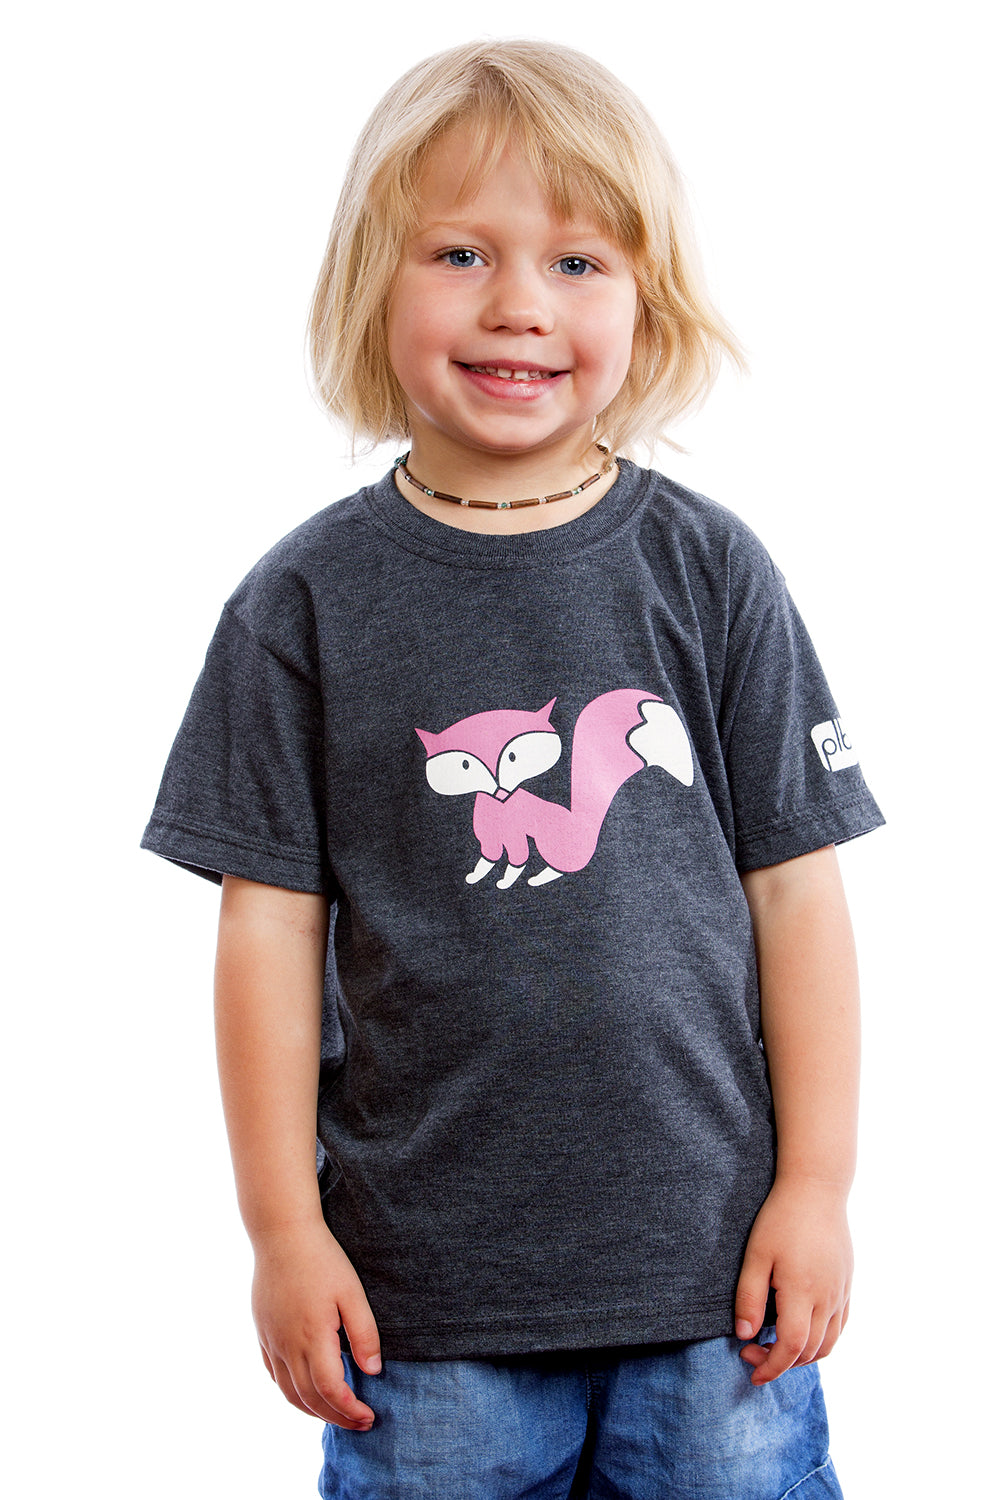 Kids Fox Shirt Graphic Tee Baby Tshirt | Organic | Made in Canada Gray Gris